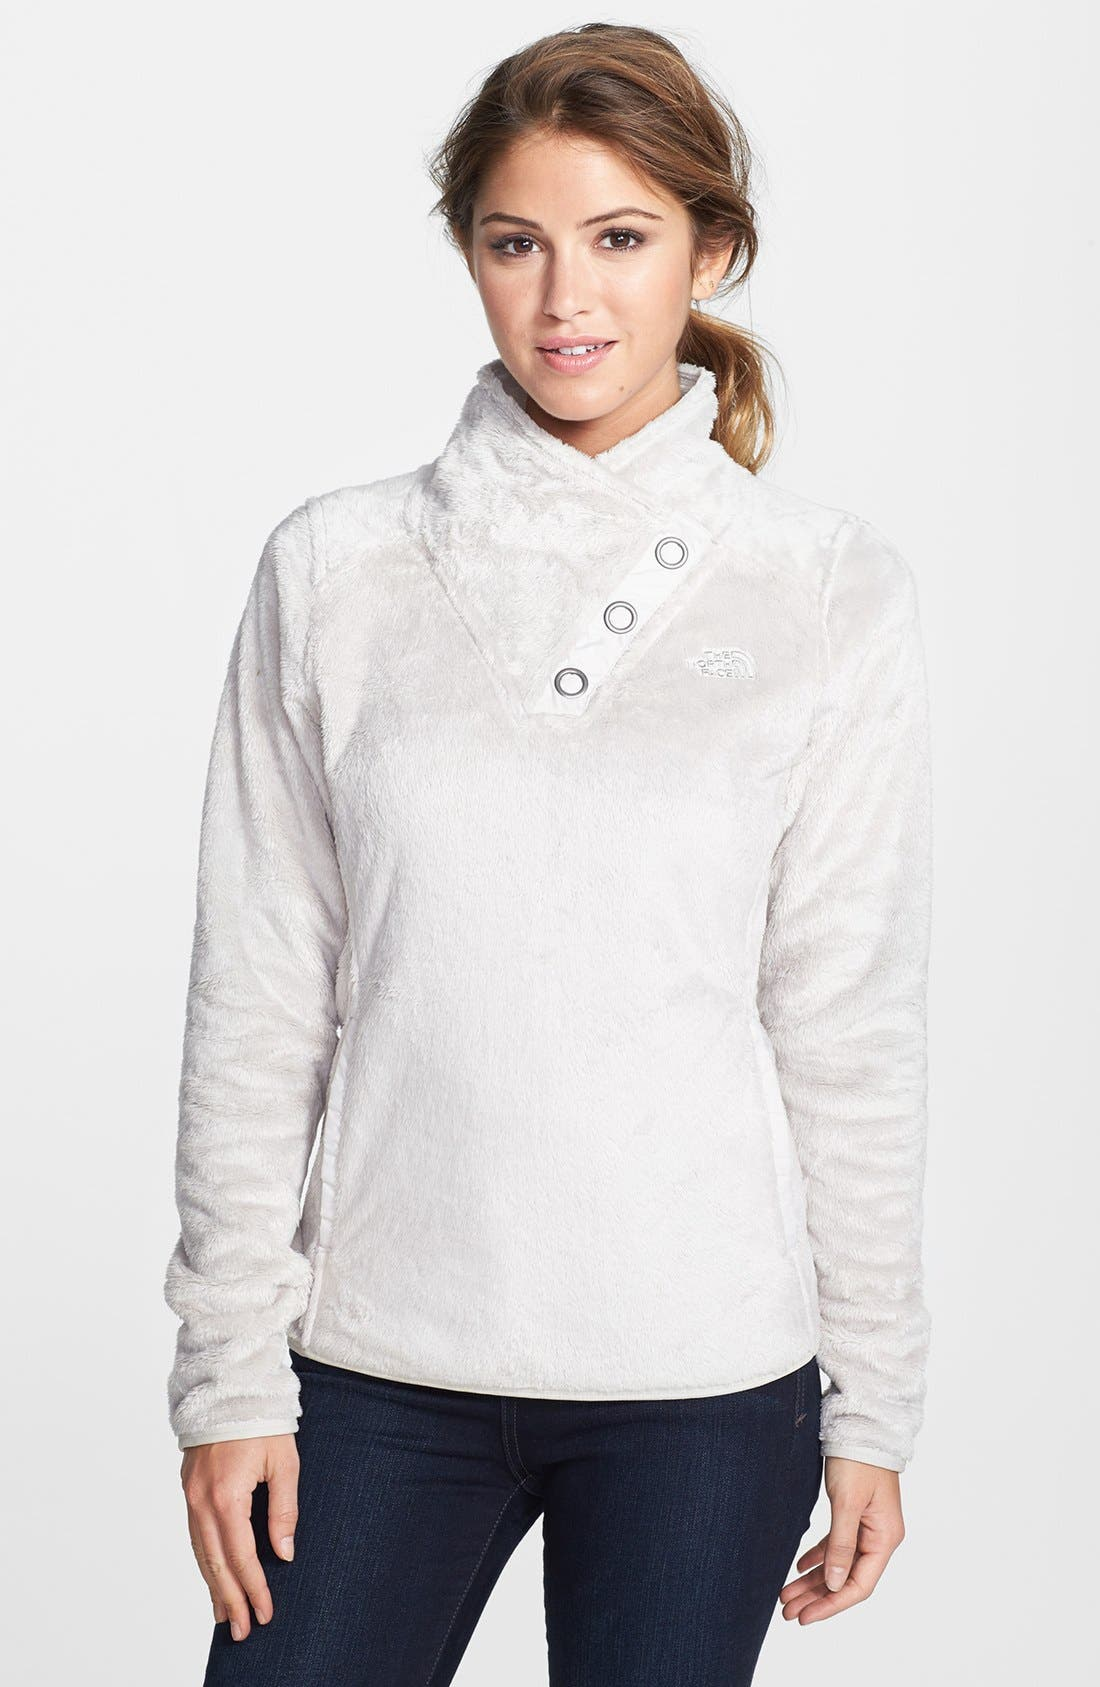 Alternate Image 1 Selected - The North Face 'Mossbud' Snap Neck Pullover (Nordstrom Exclusive)